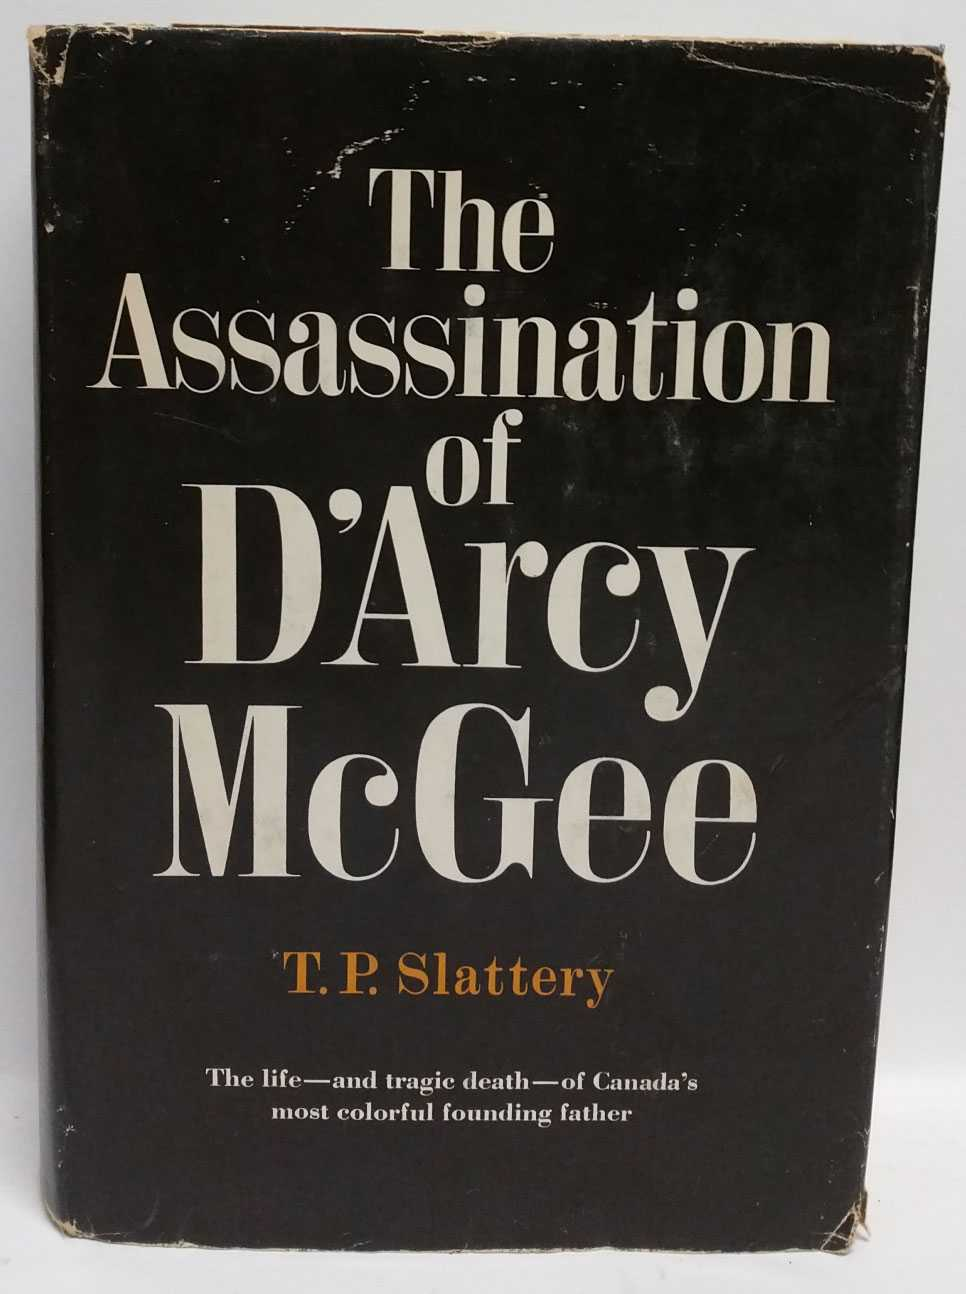 T. P. SLATTERY - The Assassination of D'Arcy McGee: The Life-and tragic death-of Canada's most colorful founding father